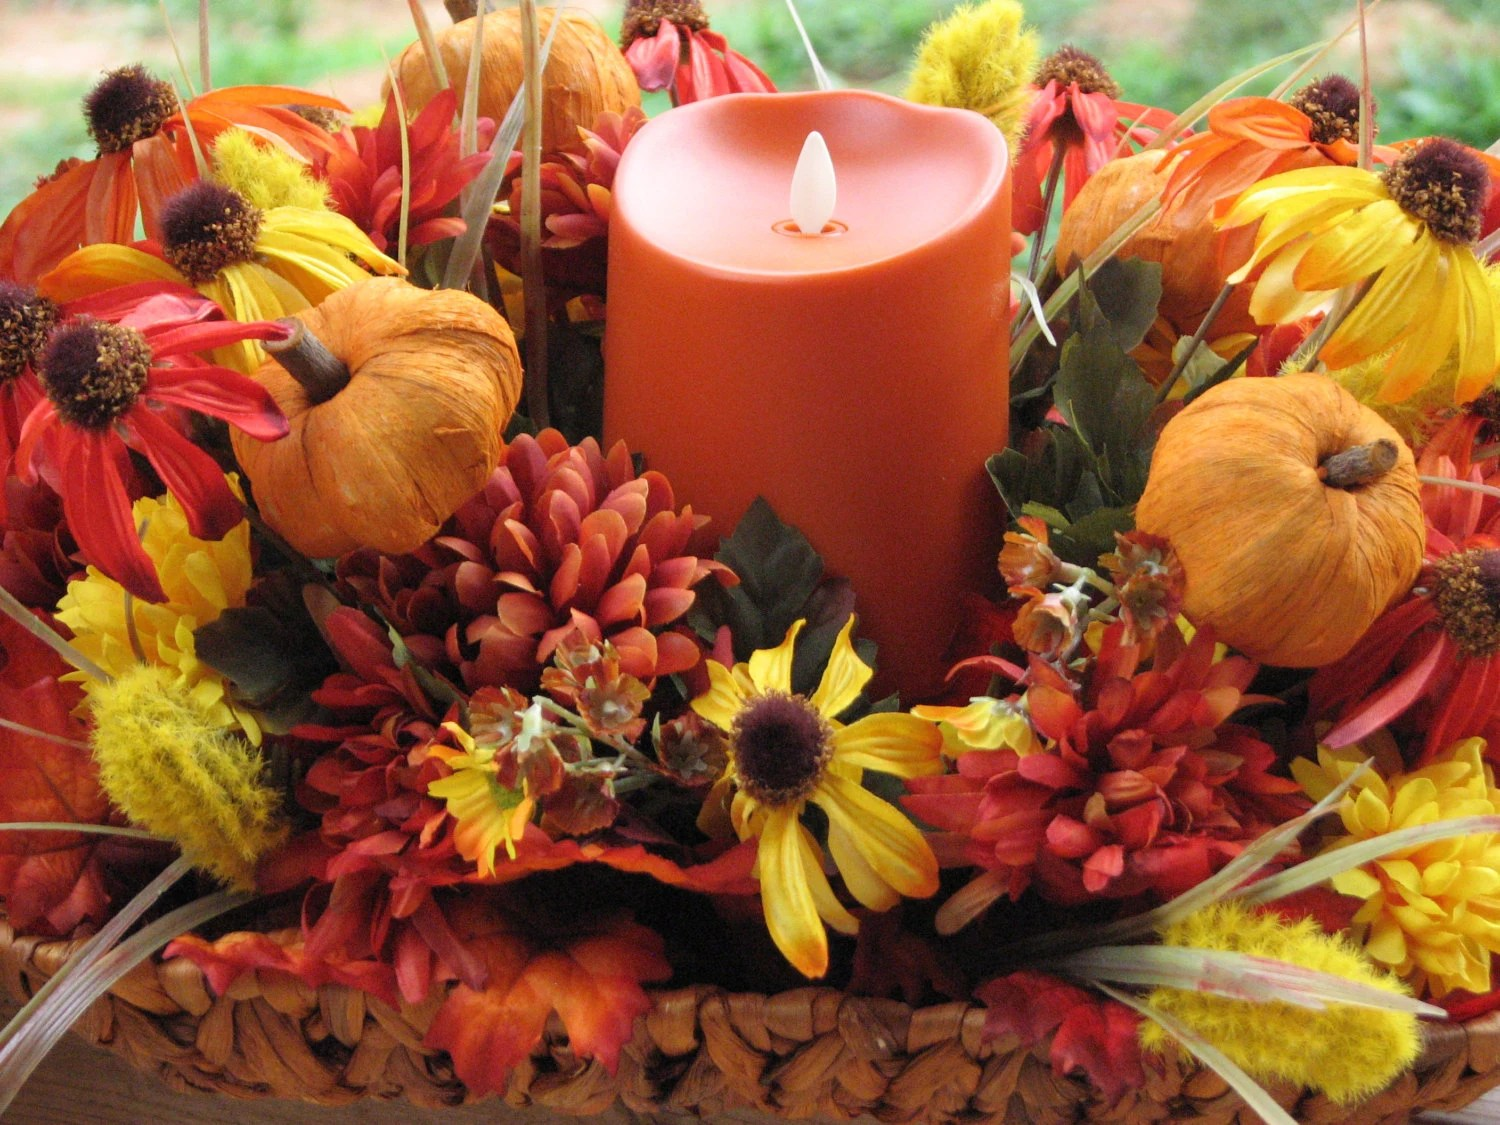 Rustic Fall Wallpaper Large Fall Centerpiece Basket Full Of Silk Flowers